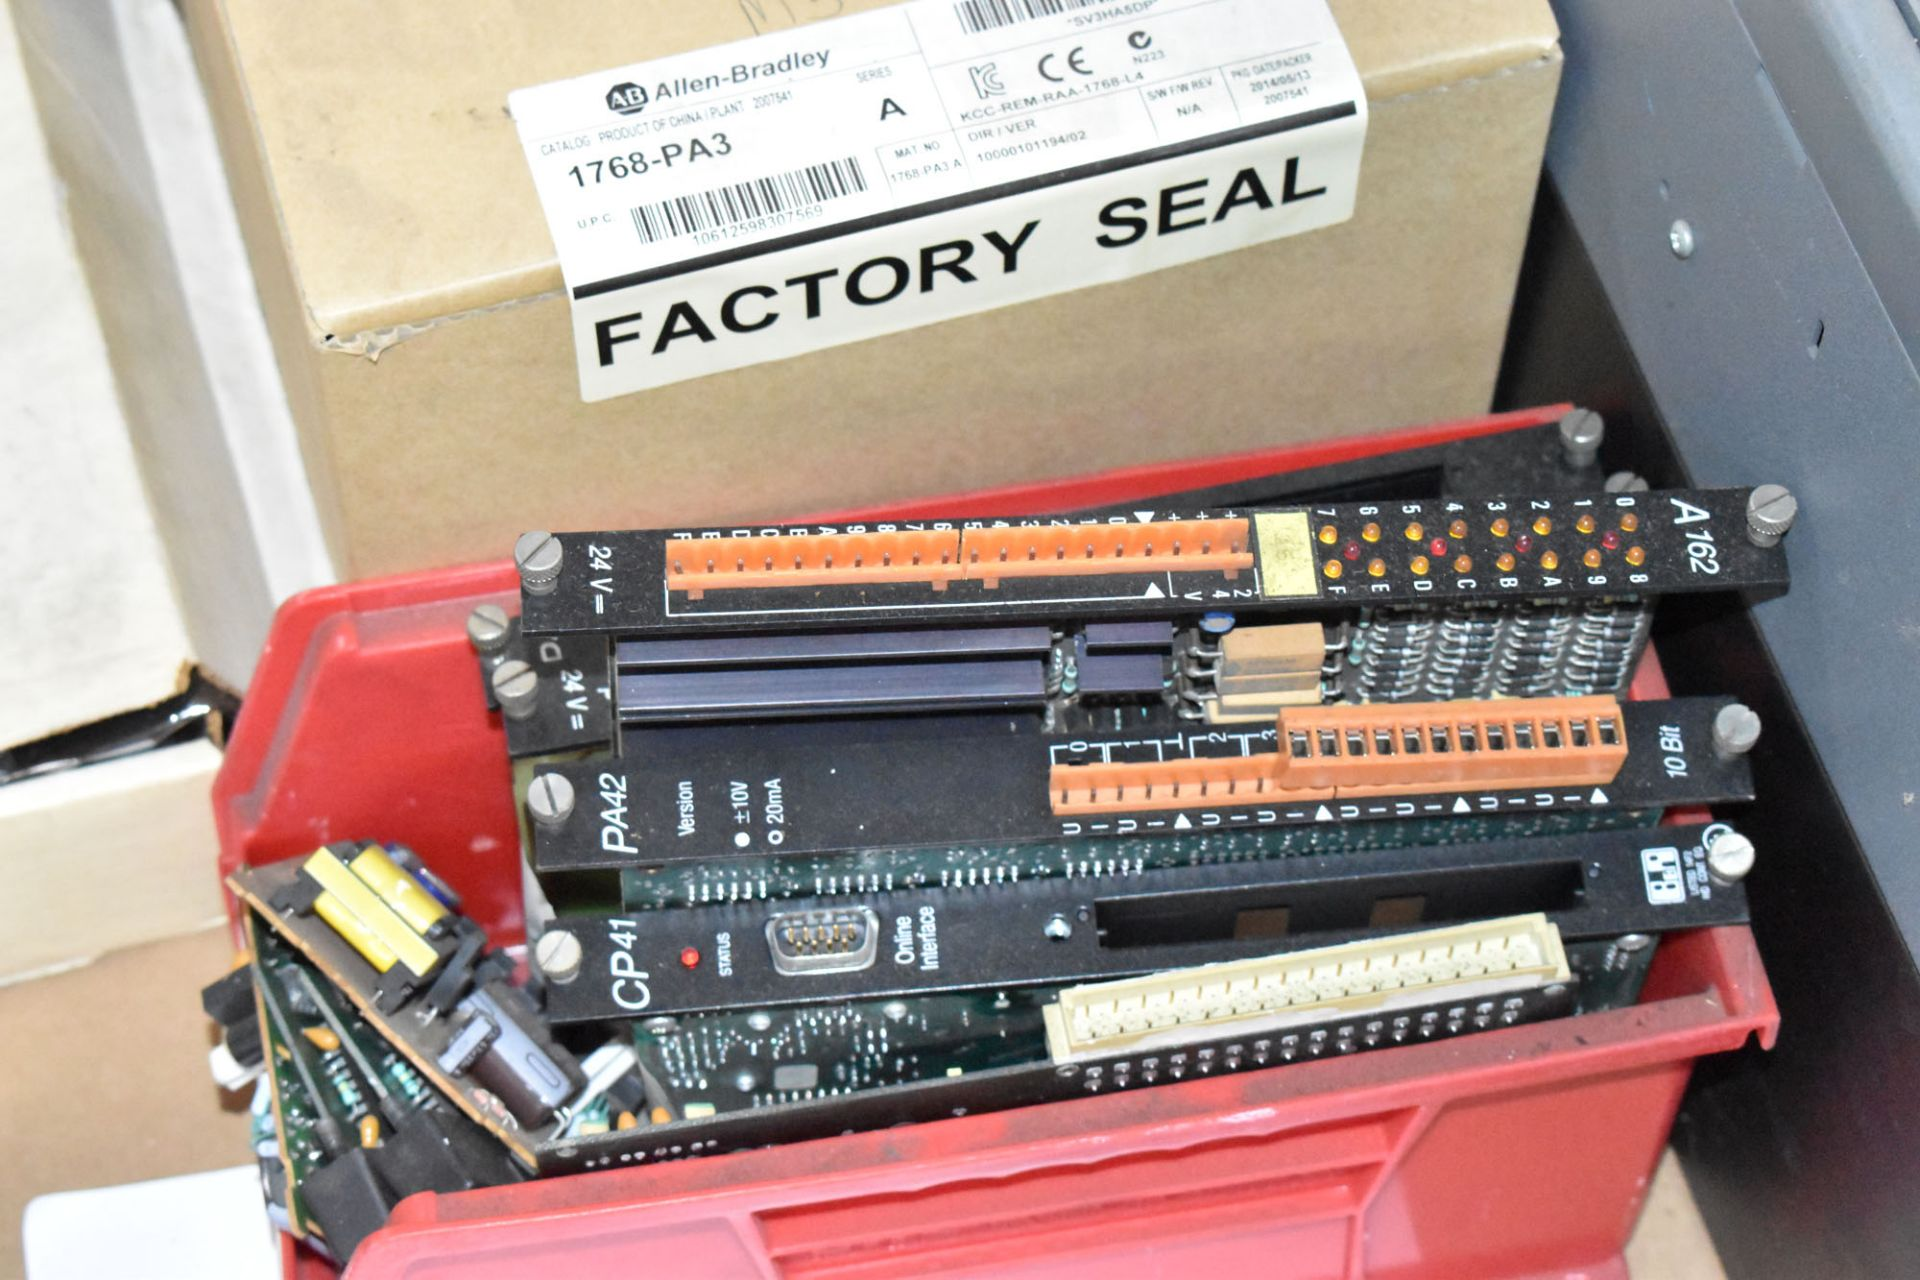 LOT/ PALLET WITH CONTENTS CONSISTING OF ELECTRICAL PANELS, PARTS, AND EXTRUDER LINE COMPONENTS [ - Image 4 of 5